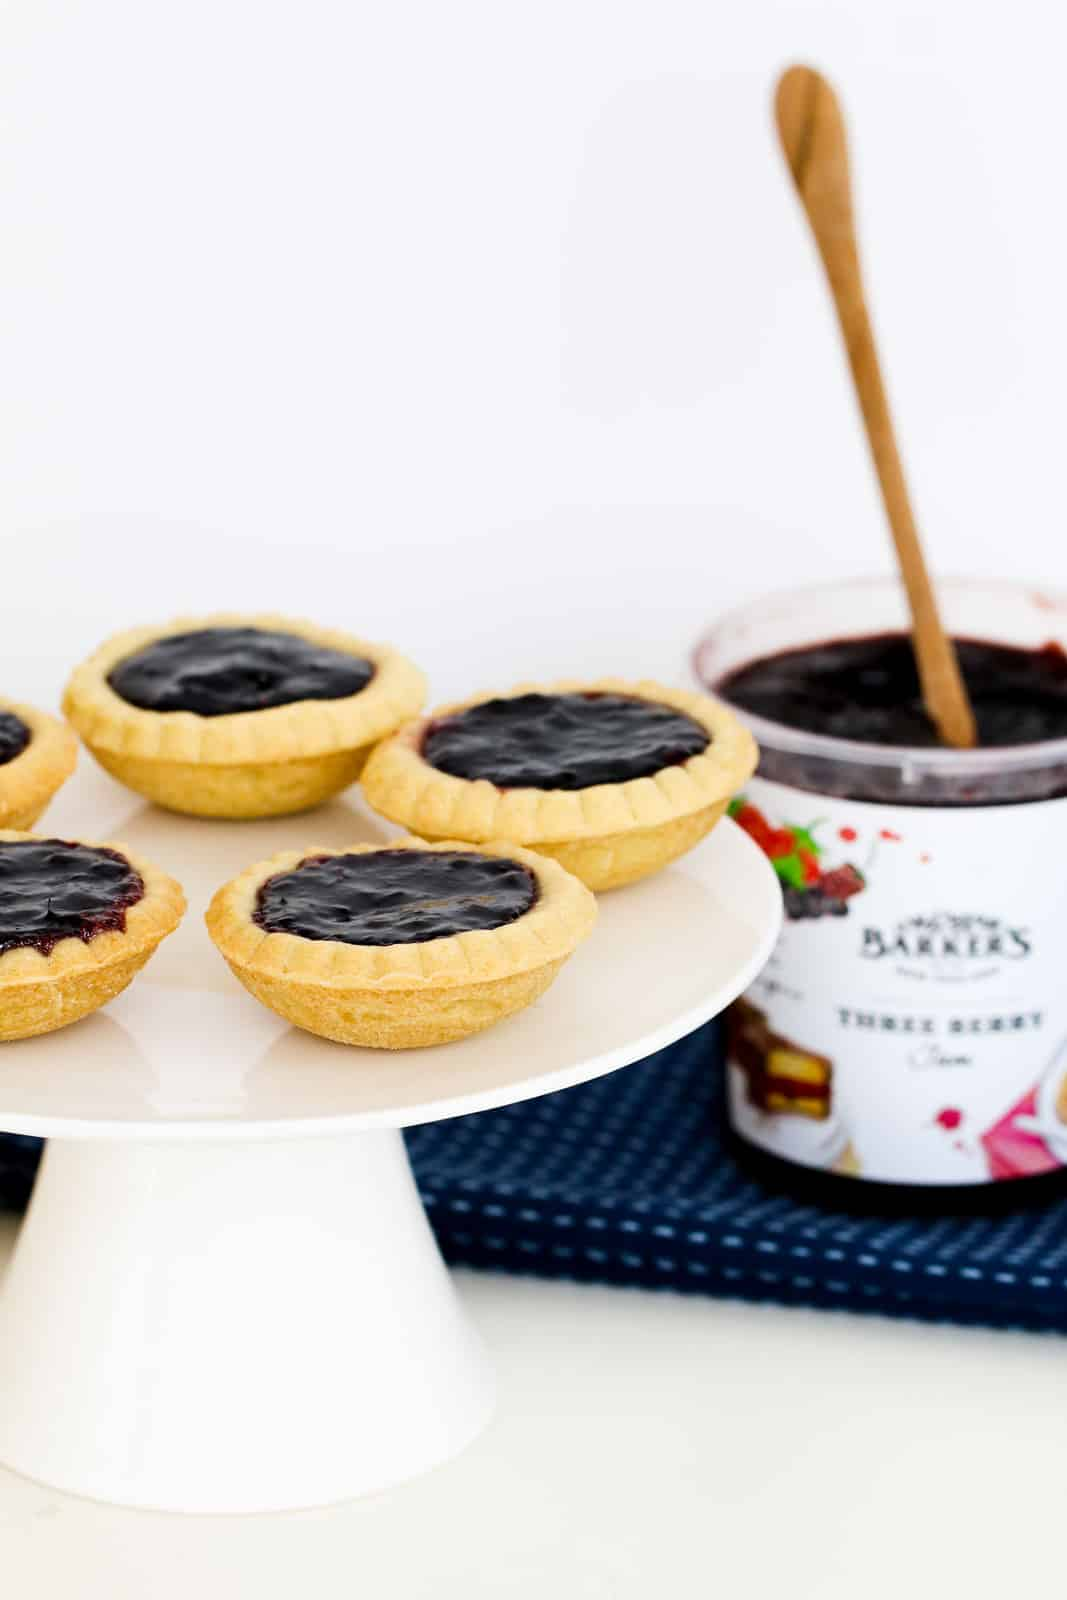 A cake stand with jam tarts on it and a jar of jam in the background.